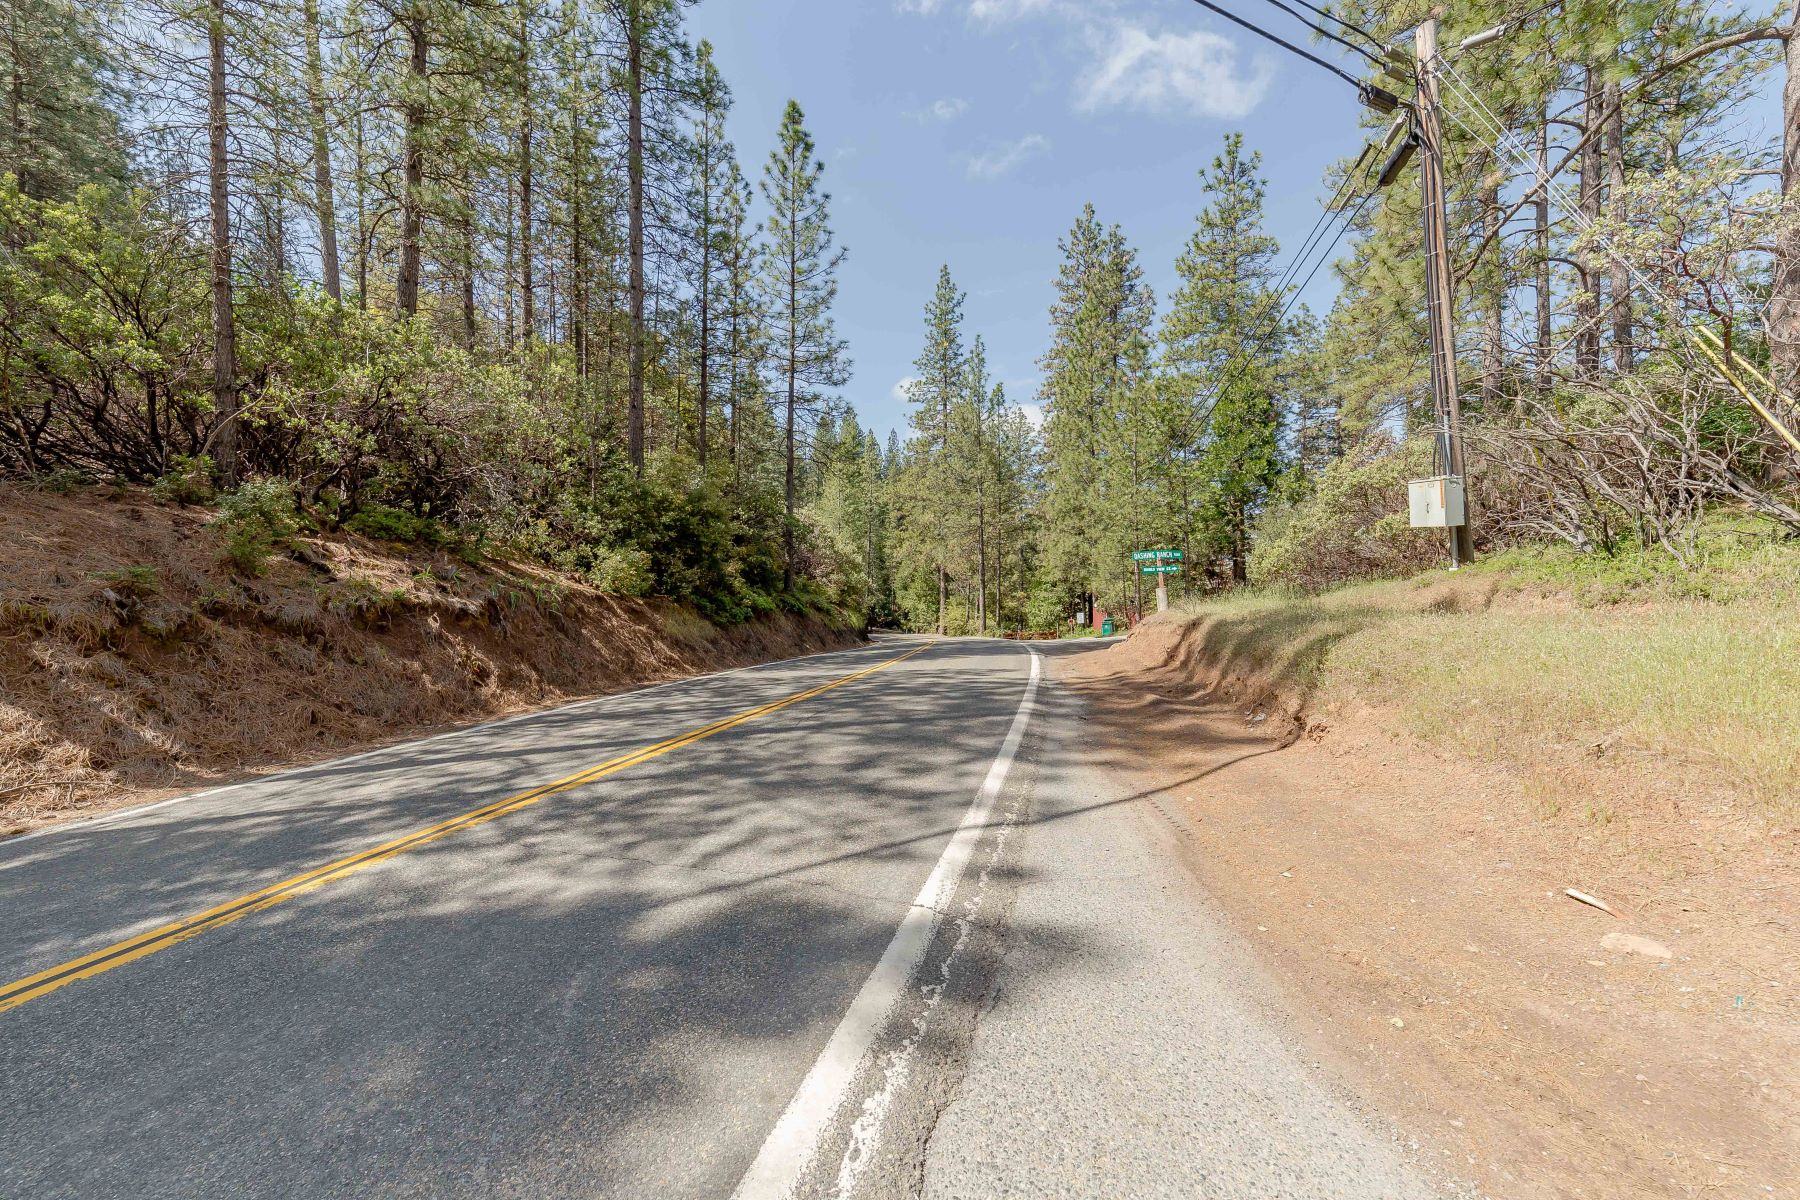 Land for Sale at 2841 Hewenthatta Way, Placerville, CA 95667 2841 Hewenthatta Way Placerville, California 95667 United States